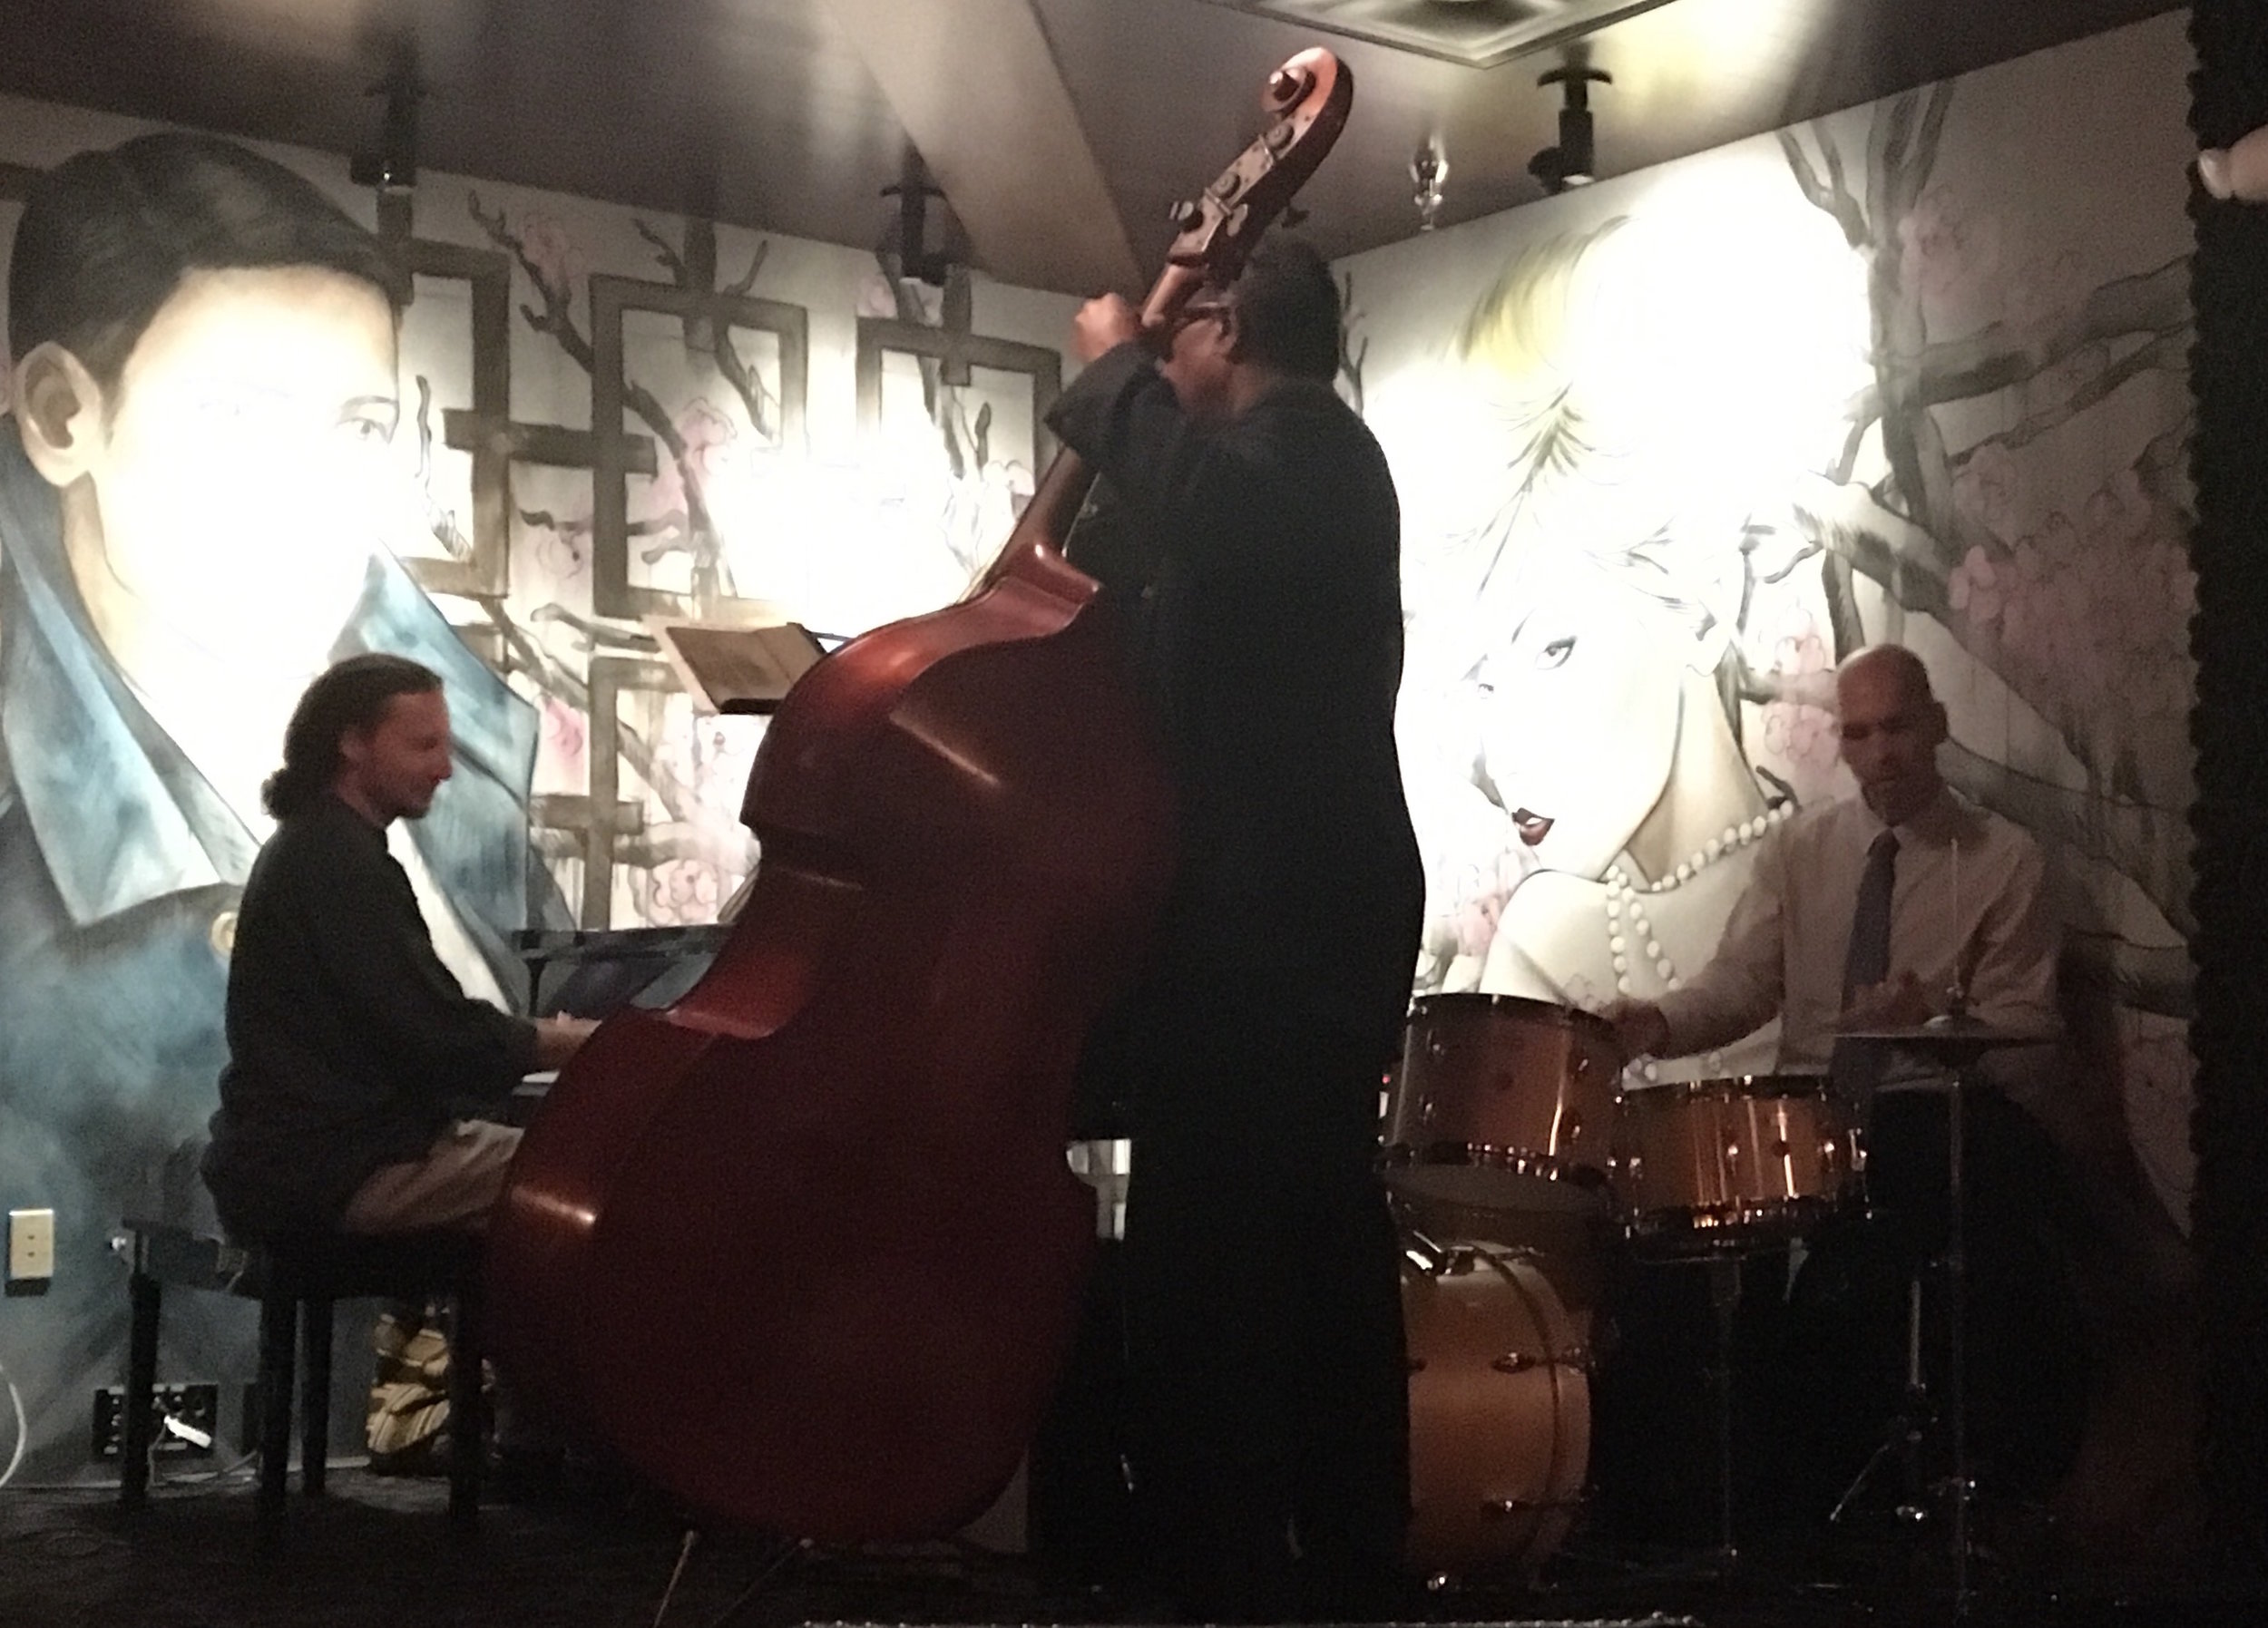 Piano - Grant Levin, Upright Bass - Charles Thomas, Drums - Rick Rivera